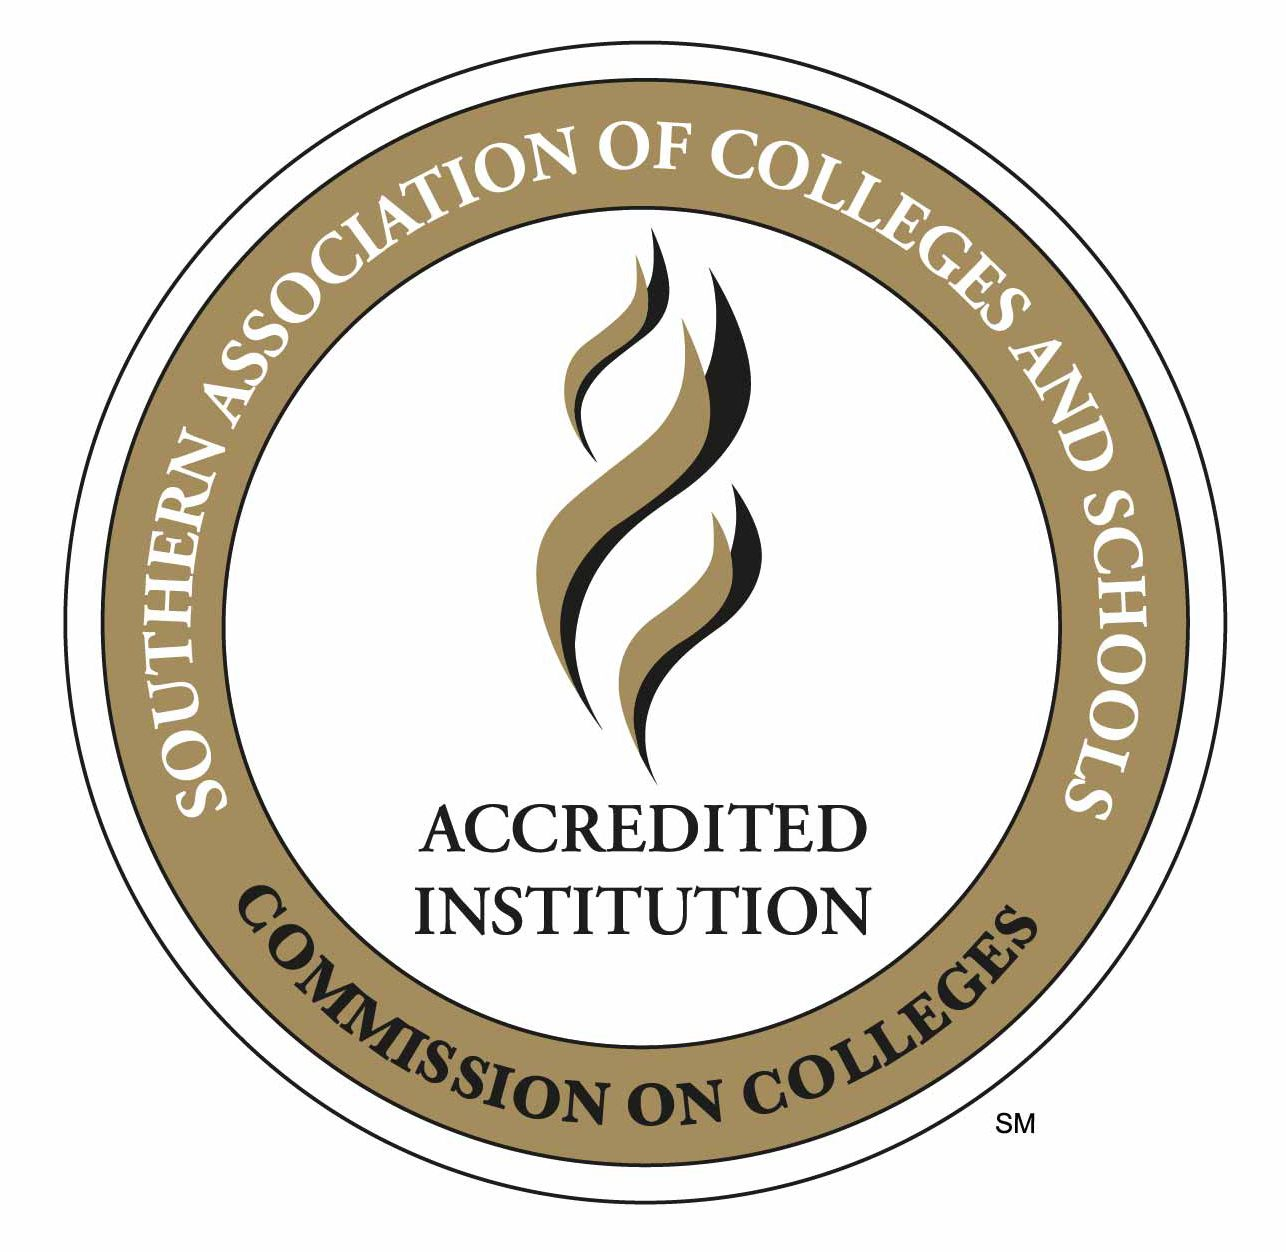 Southern Association of Colleges and Schools Commission on Colleges Accredited Institution seal logo